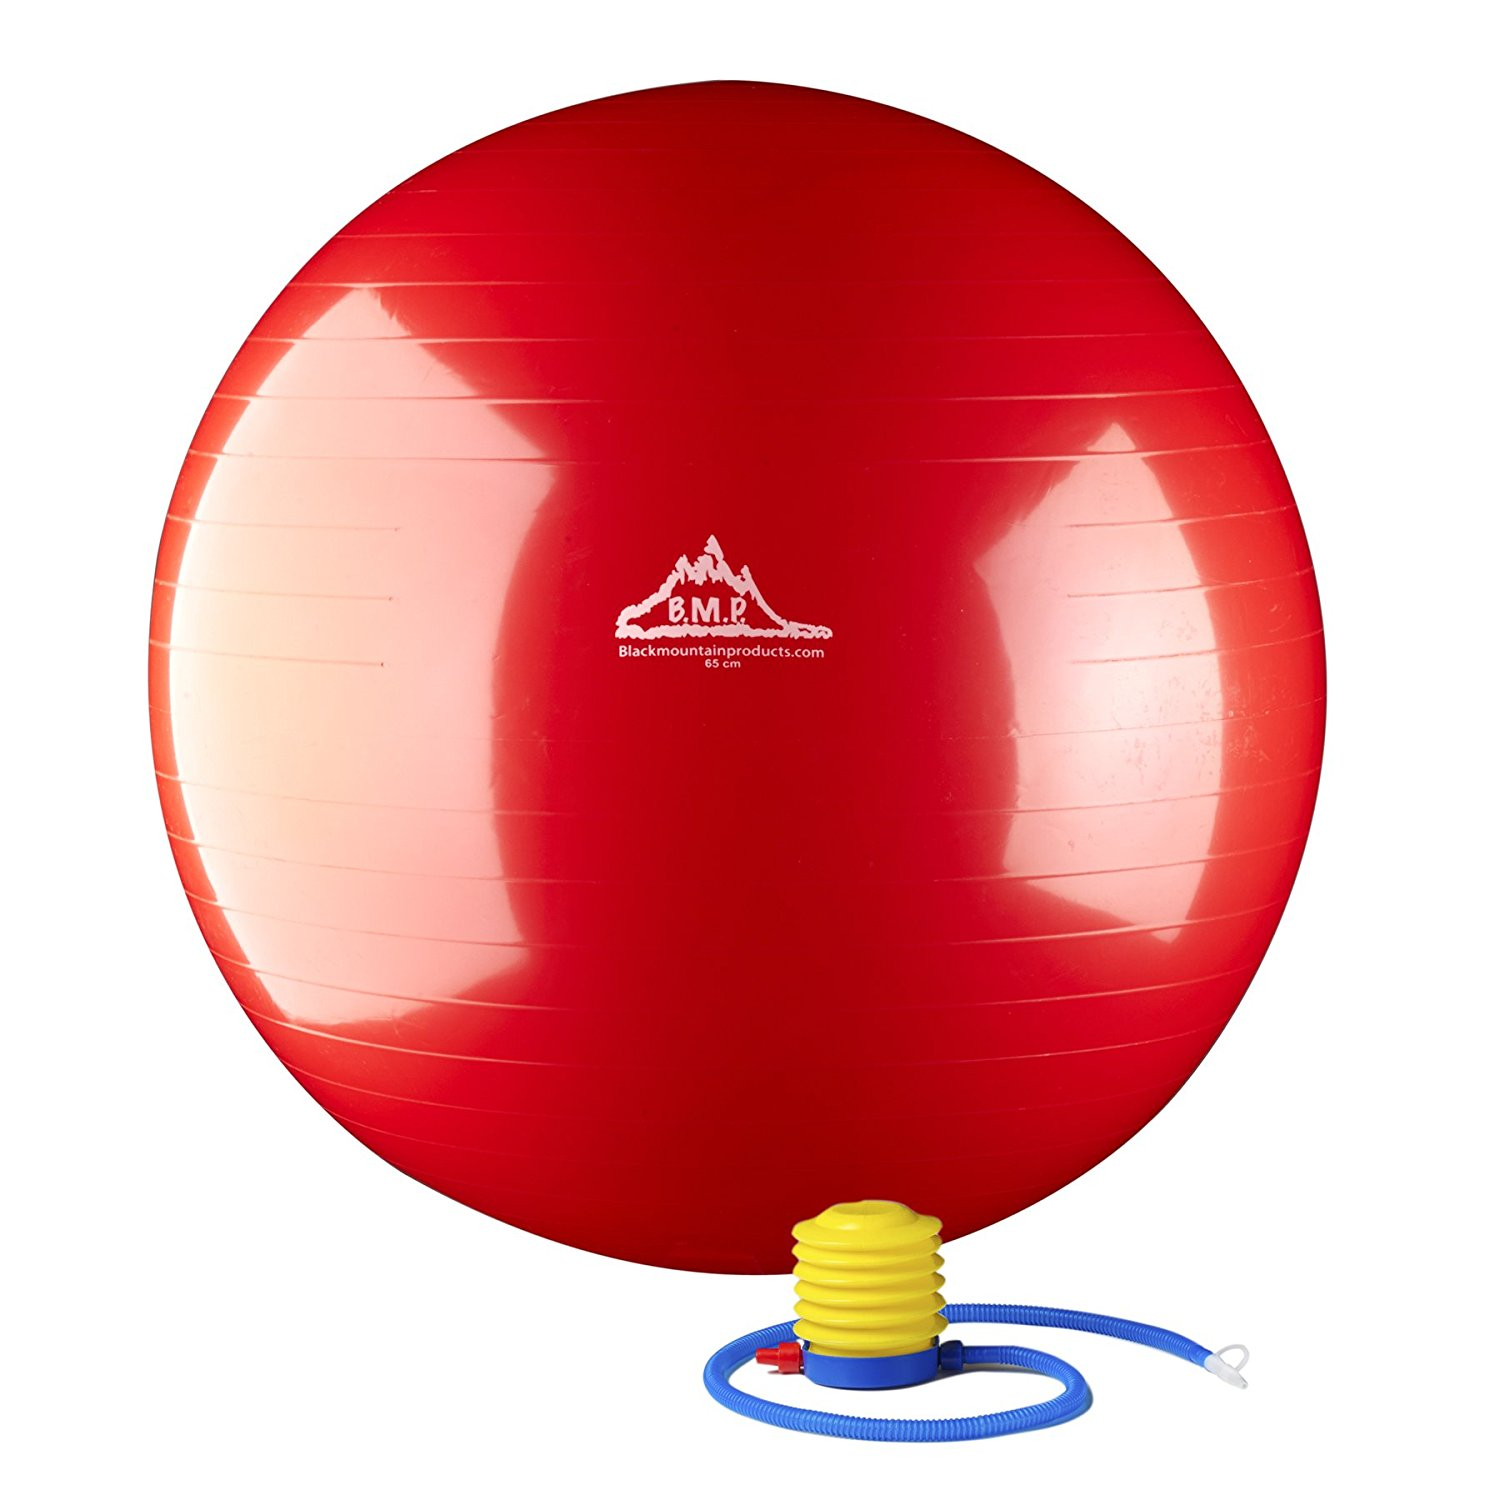 sitting on a ball to improve posture